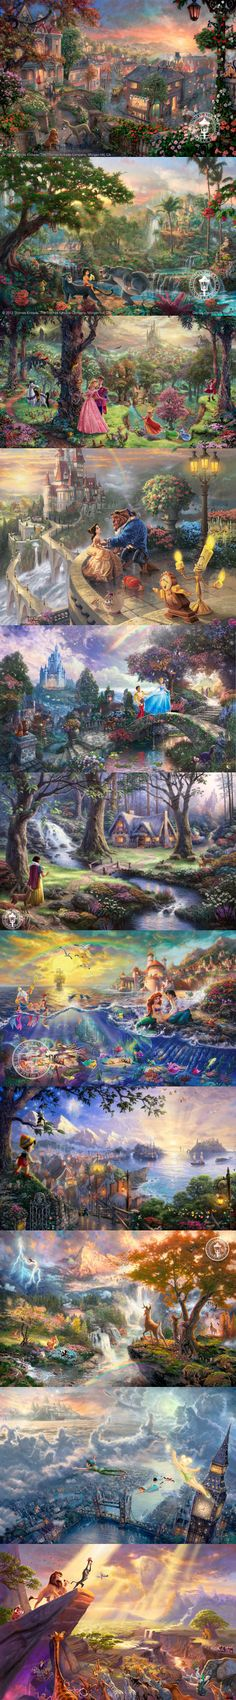 Thomas Kinkade's Disney Landscapes :) These are the most AMAZING PICTURES I'VE EVER SEEN IN MY LIFE!!